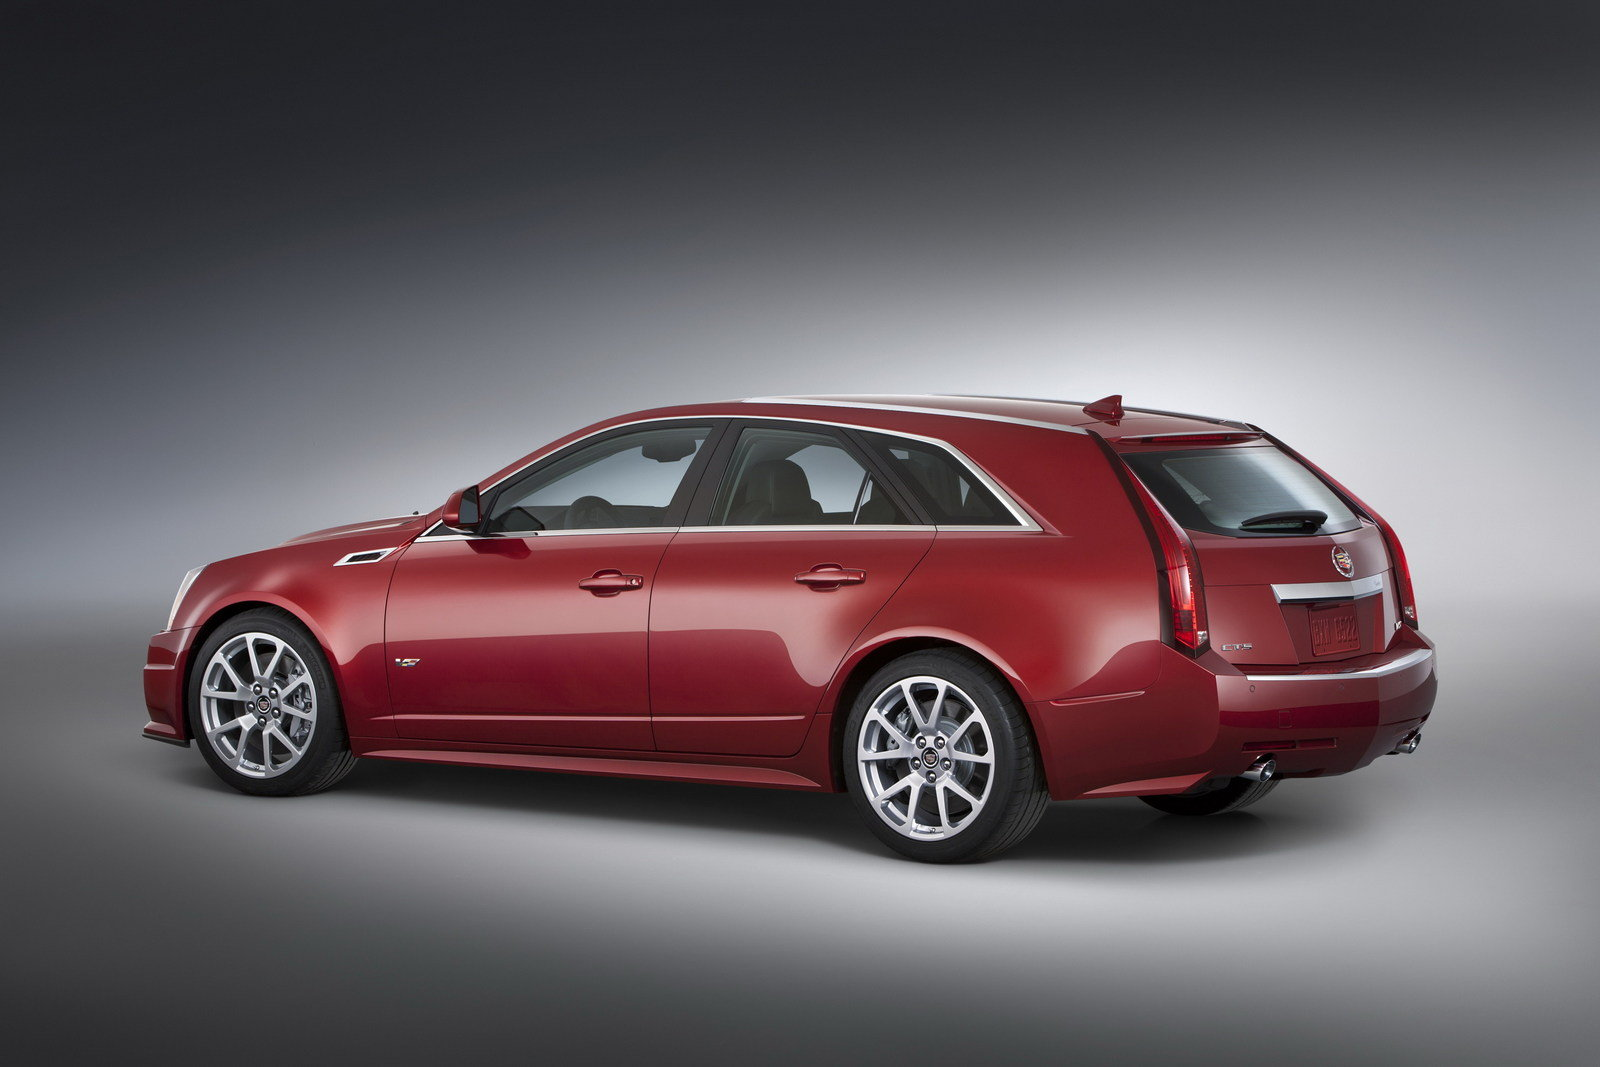 2014 cadillac cts v wagon picture 545932 car review top speed. Black Bedroom Furniture Sets. Home Design Ideas